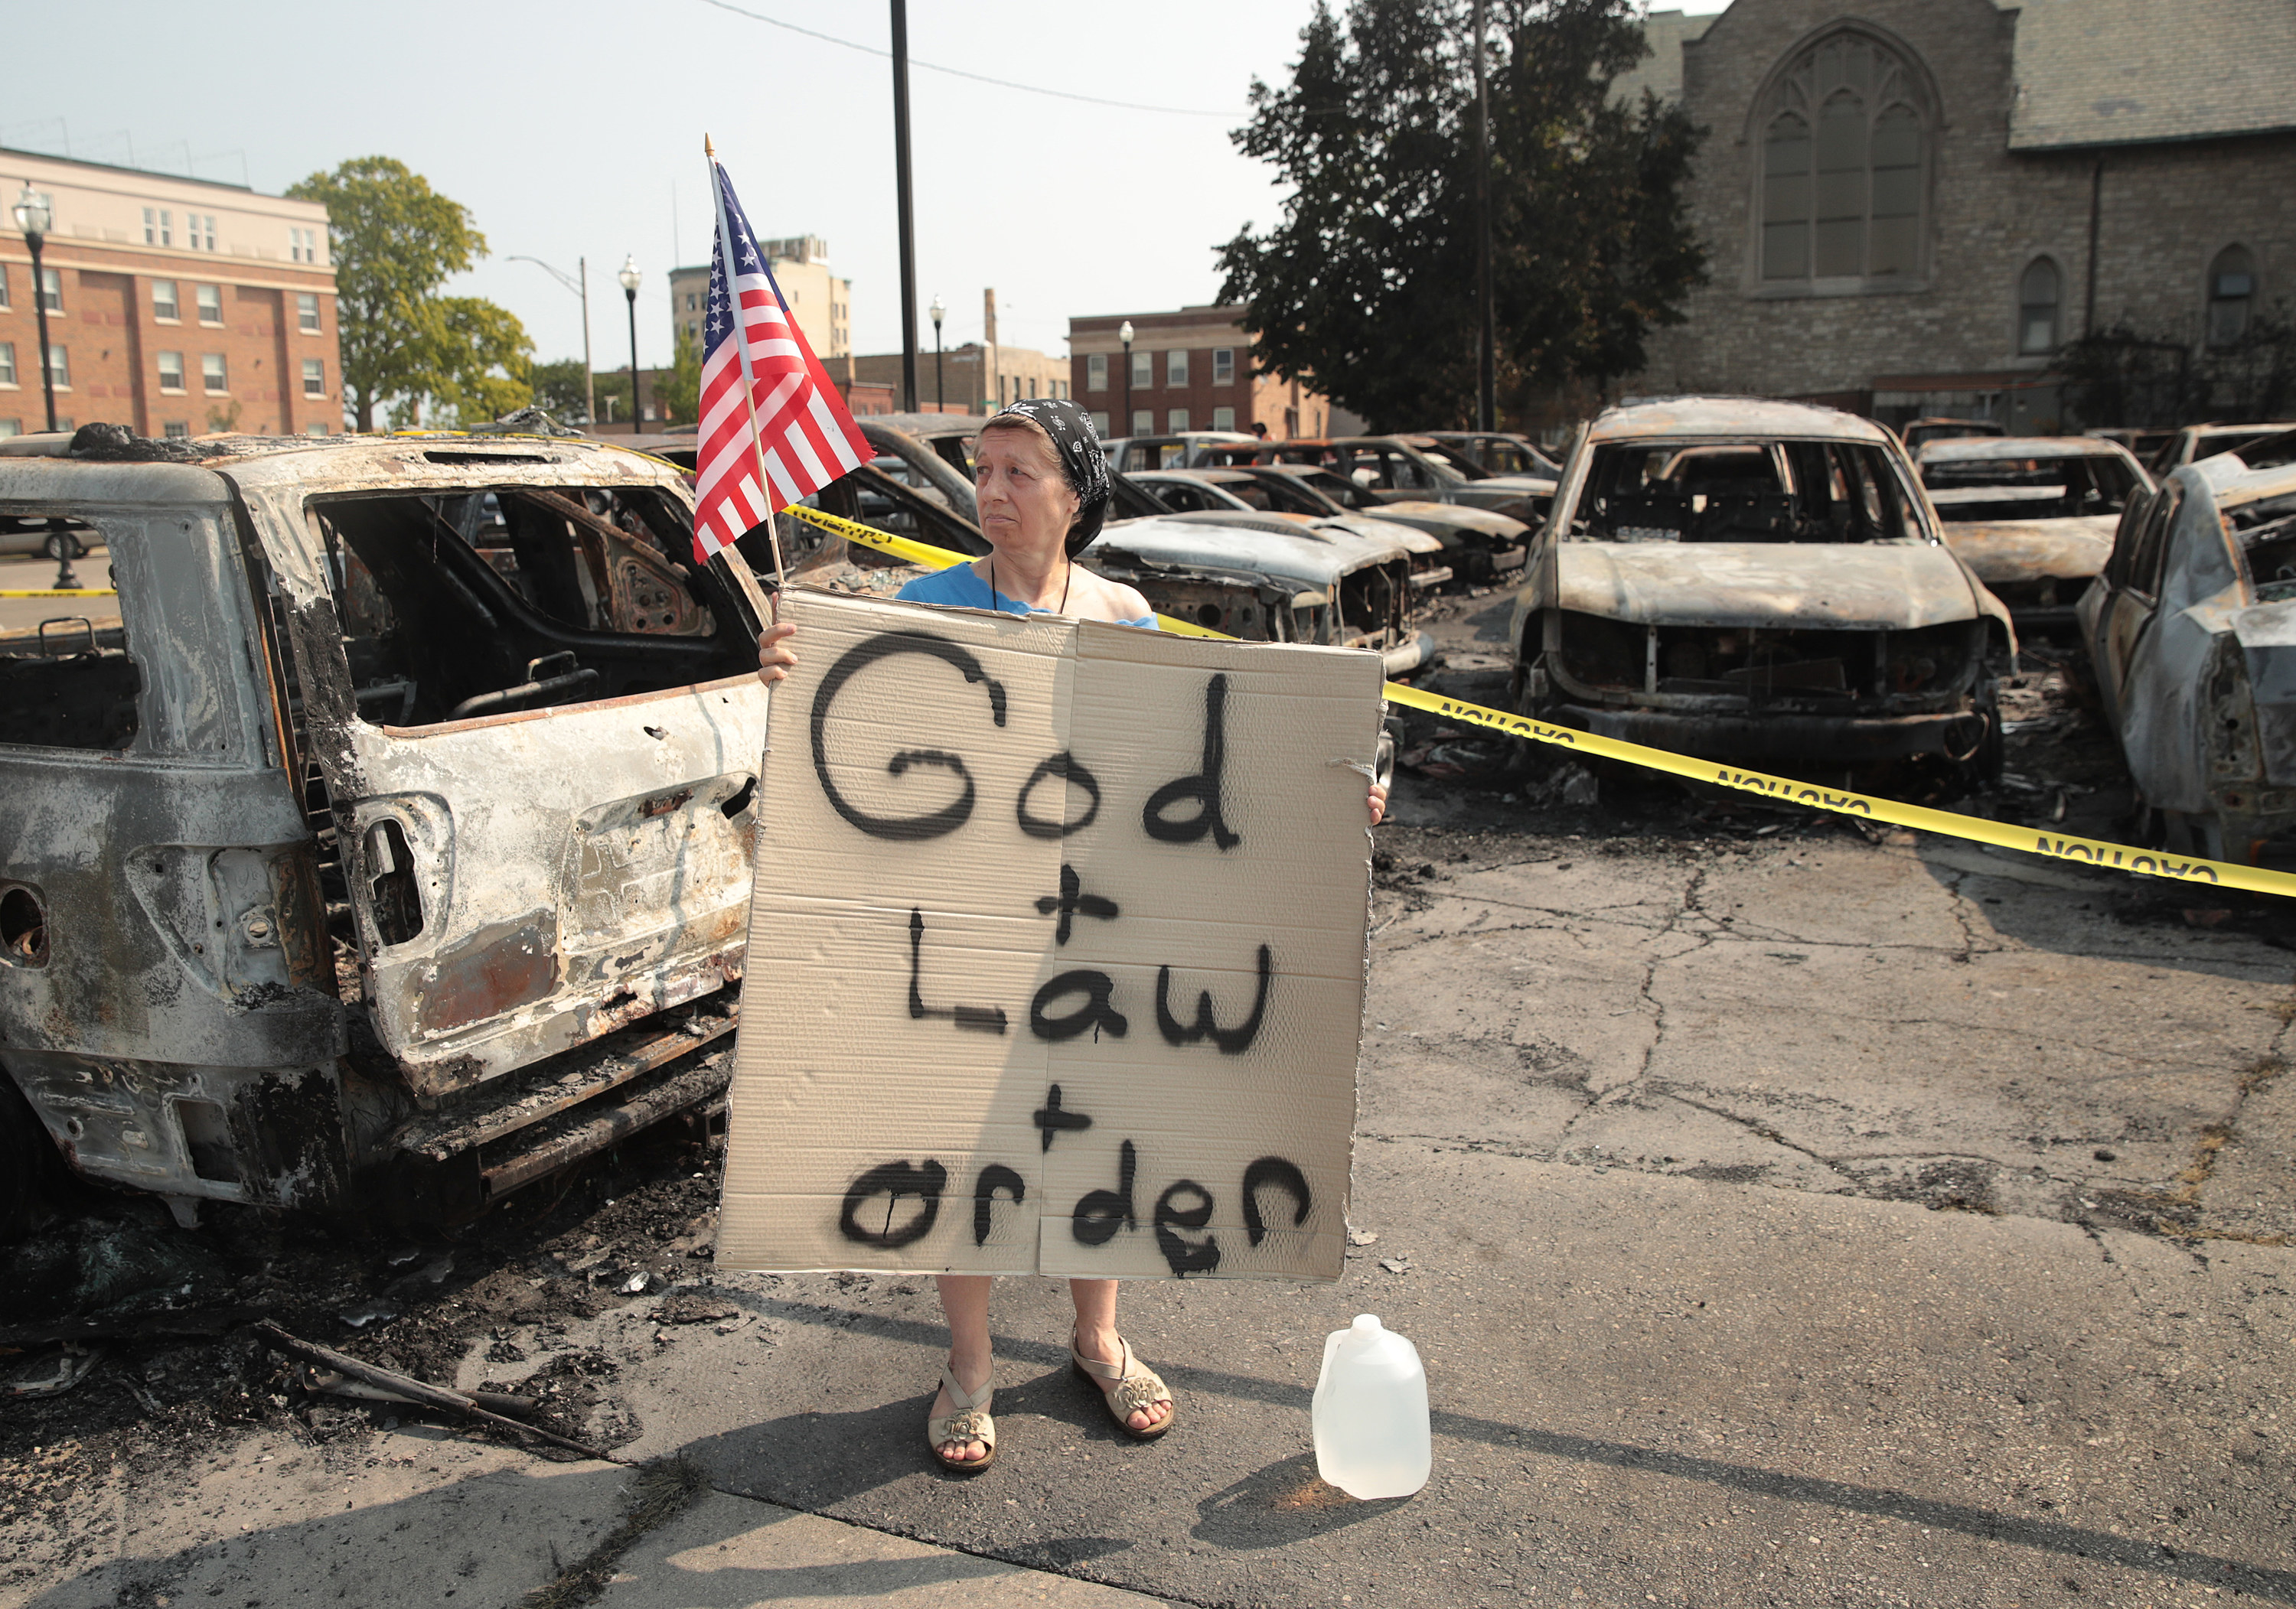 A woman holds a small American flag and a cardboard sign that says god + law + order